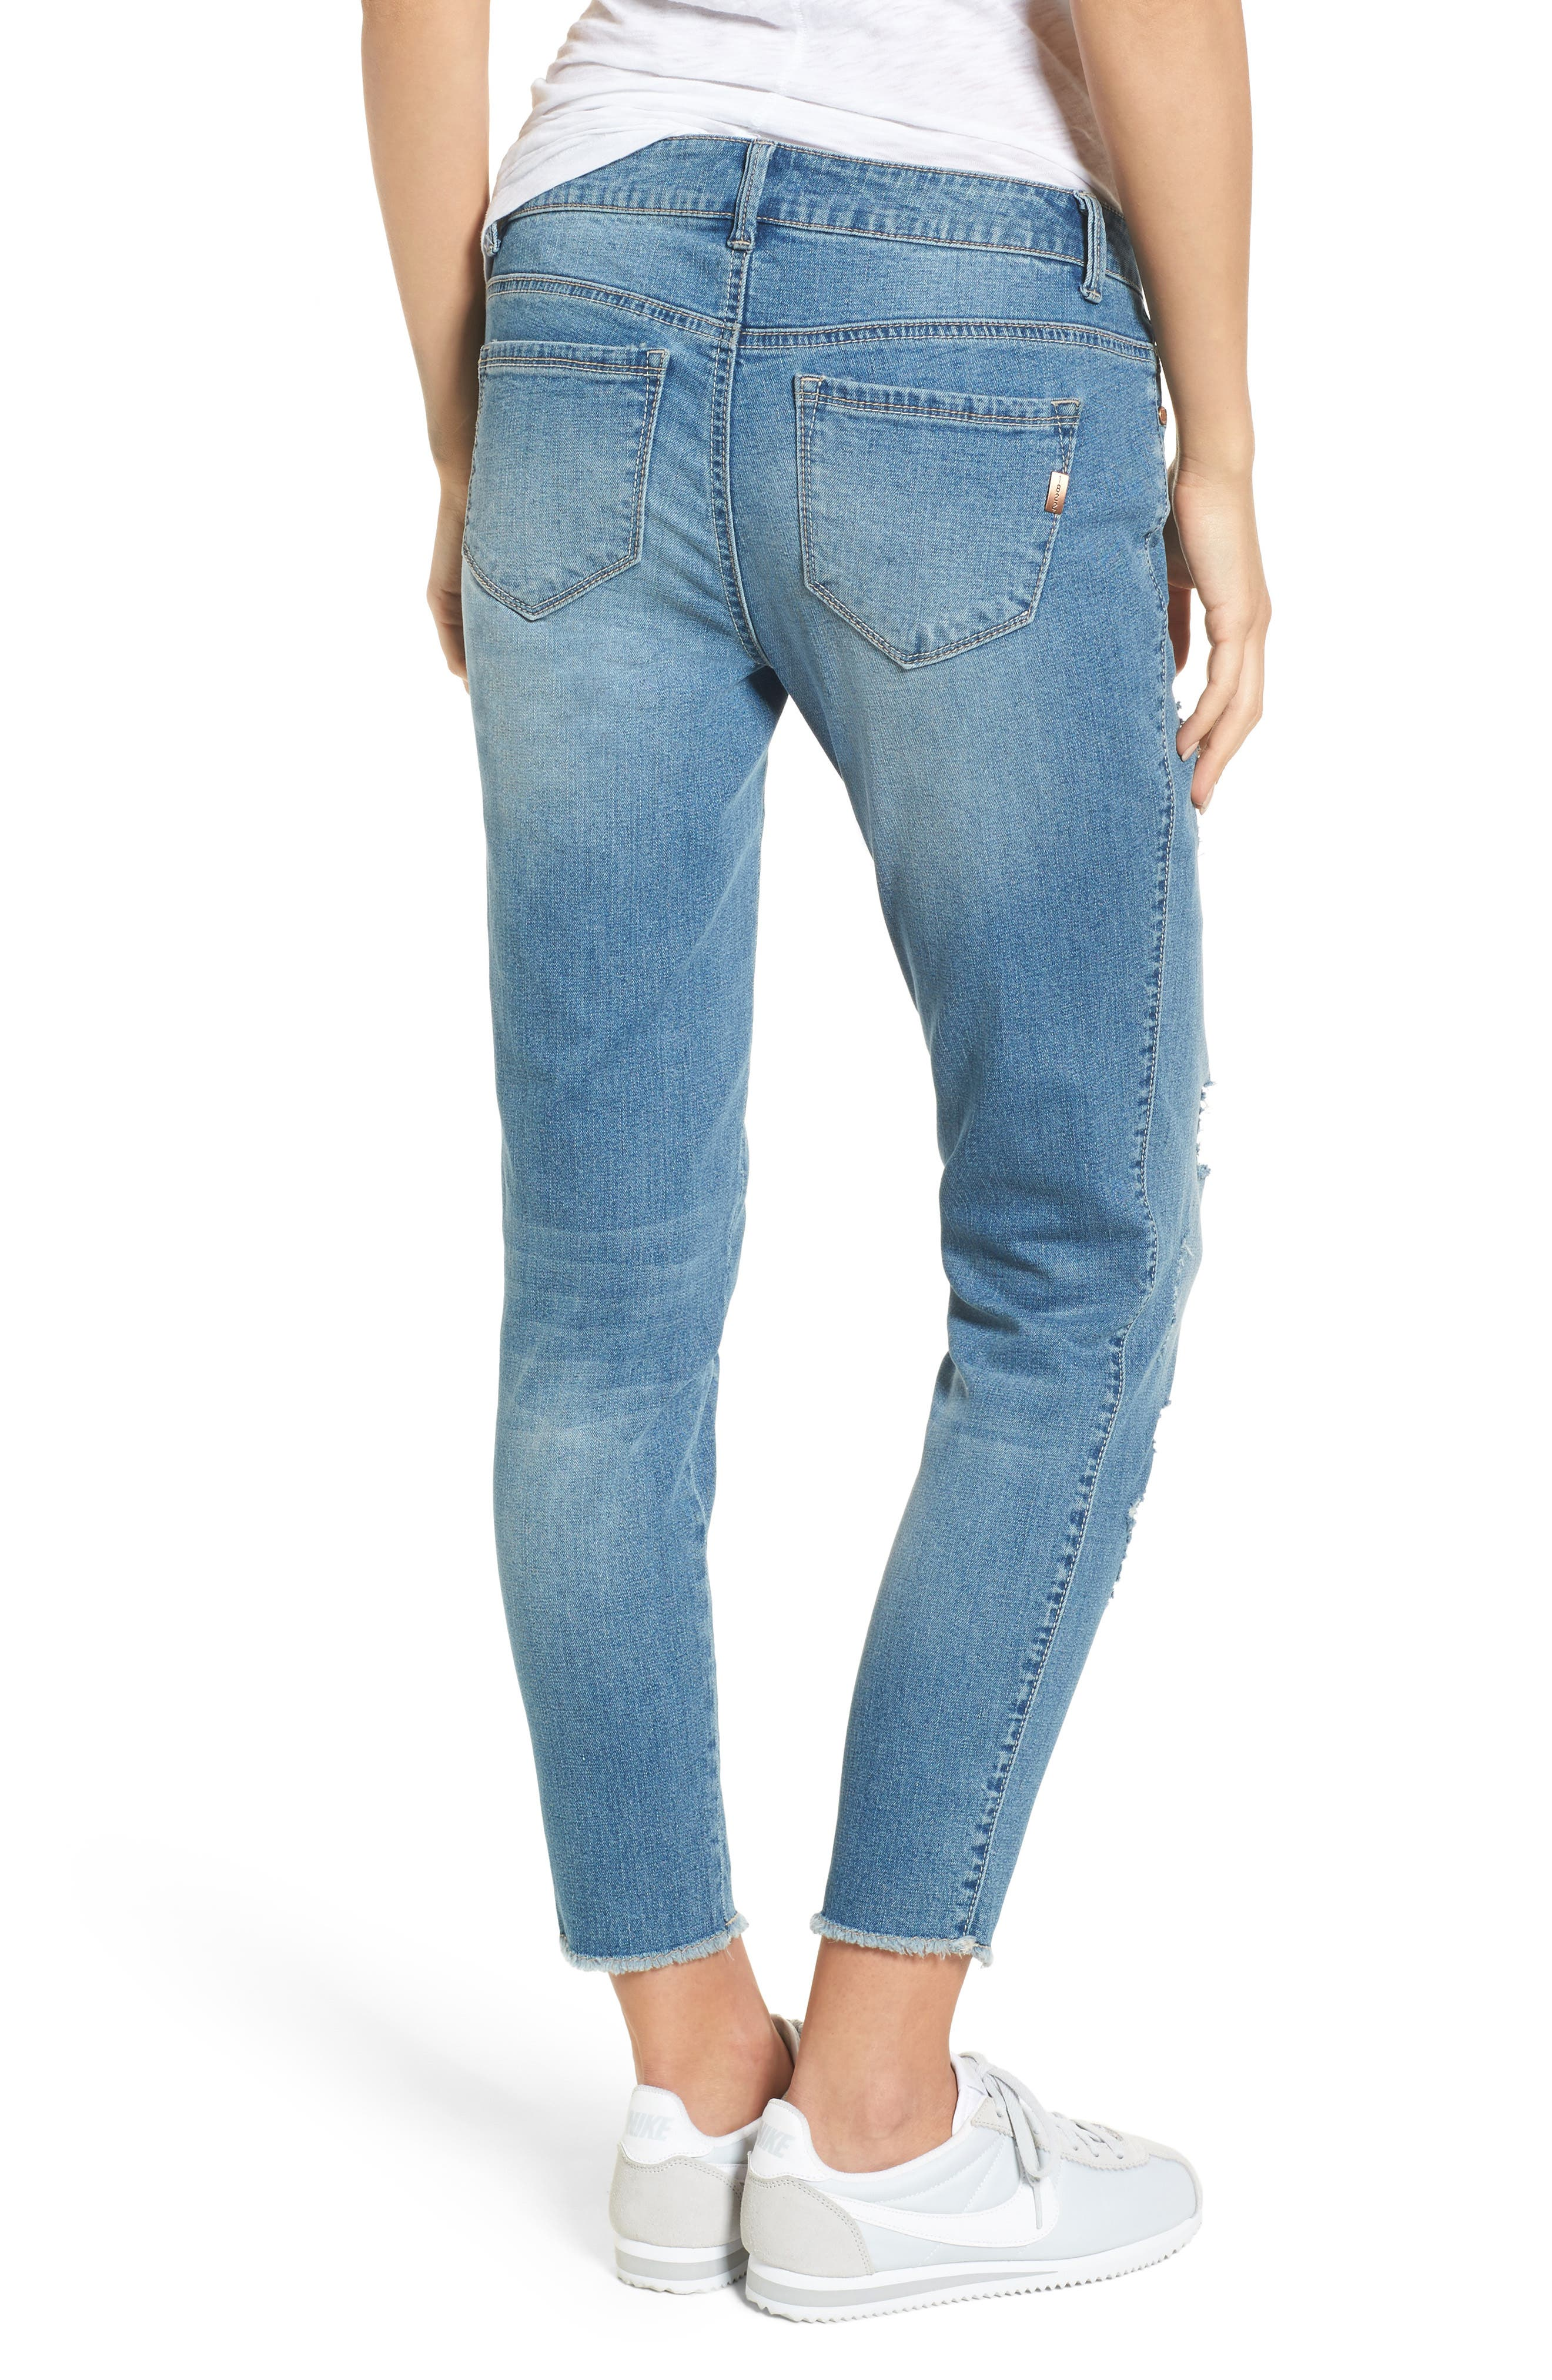 Rip & Repair Ankle Skinny Jeans,                             Alternate thumbnail 2, color,                             426